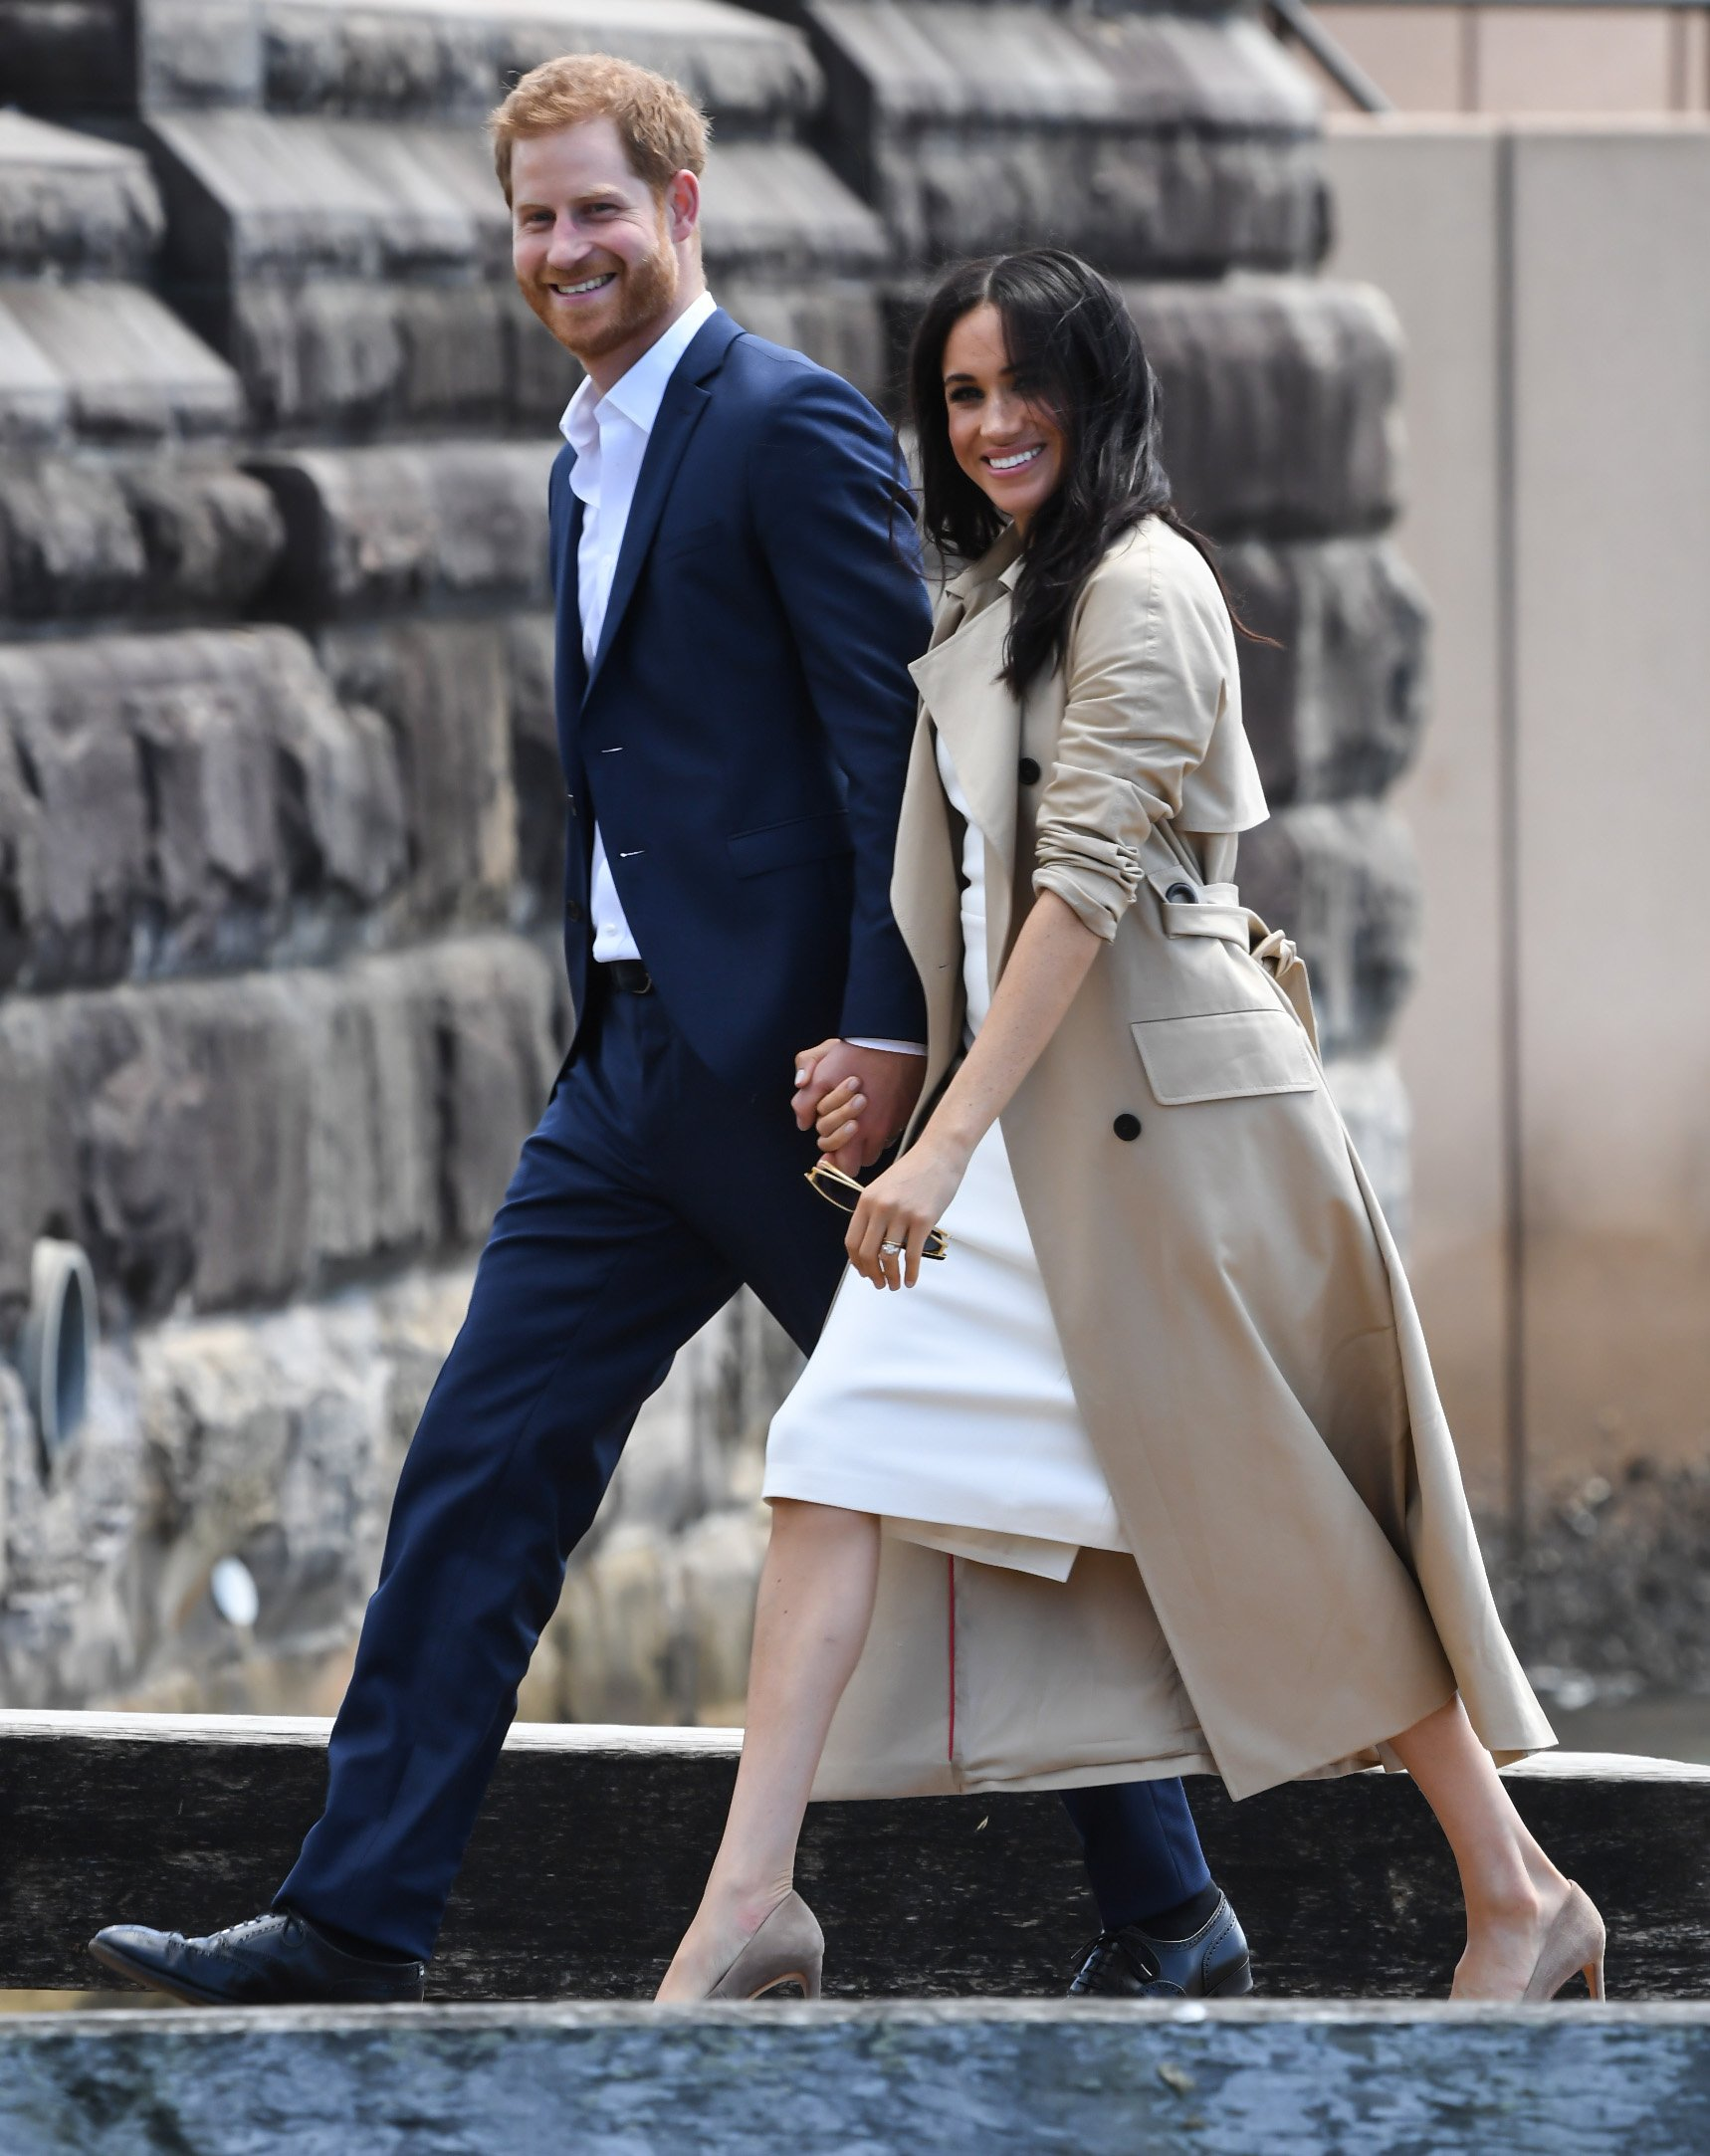 Image Credits: Getty Images / James D. Morgan   Prince Harry, Duke of Sussex and Meghan, Duchess of Sussex arrive at Man o'War Steps, a wharf next to the Opera House on October 16, 2018 in Sydney, Australia. The Duke and Duchess of Sussex are on their official 16-day Autumn tour visiting cities in Australia, Fiji, Tonga and New Zealand.